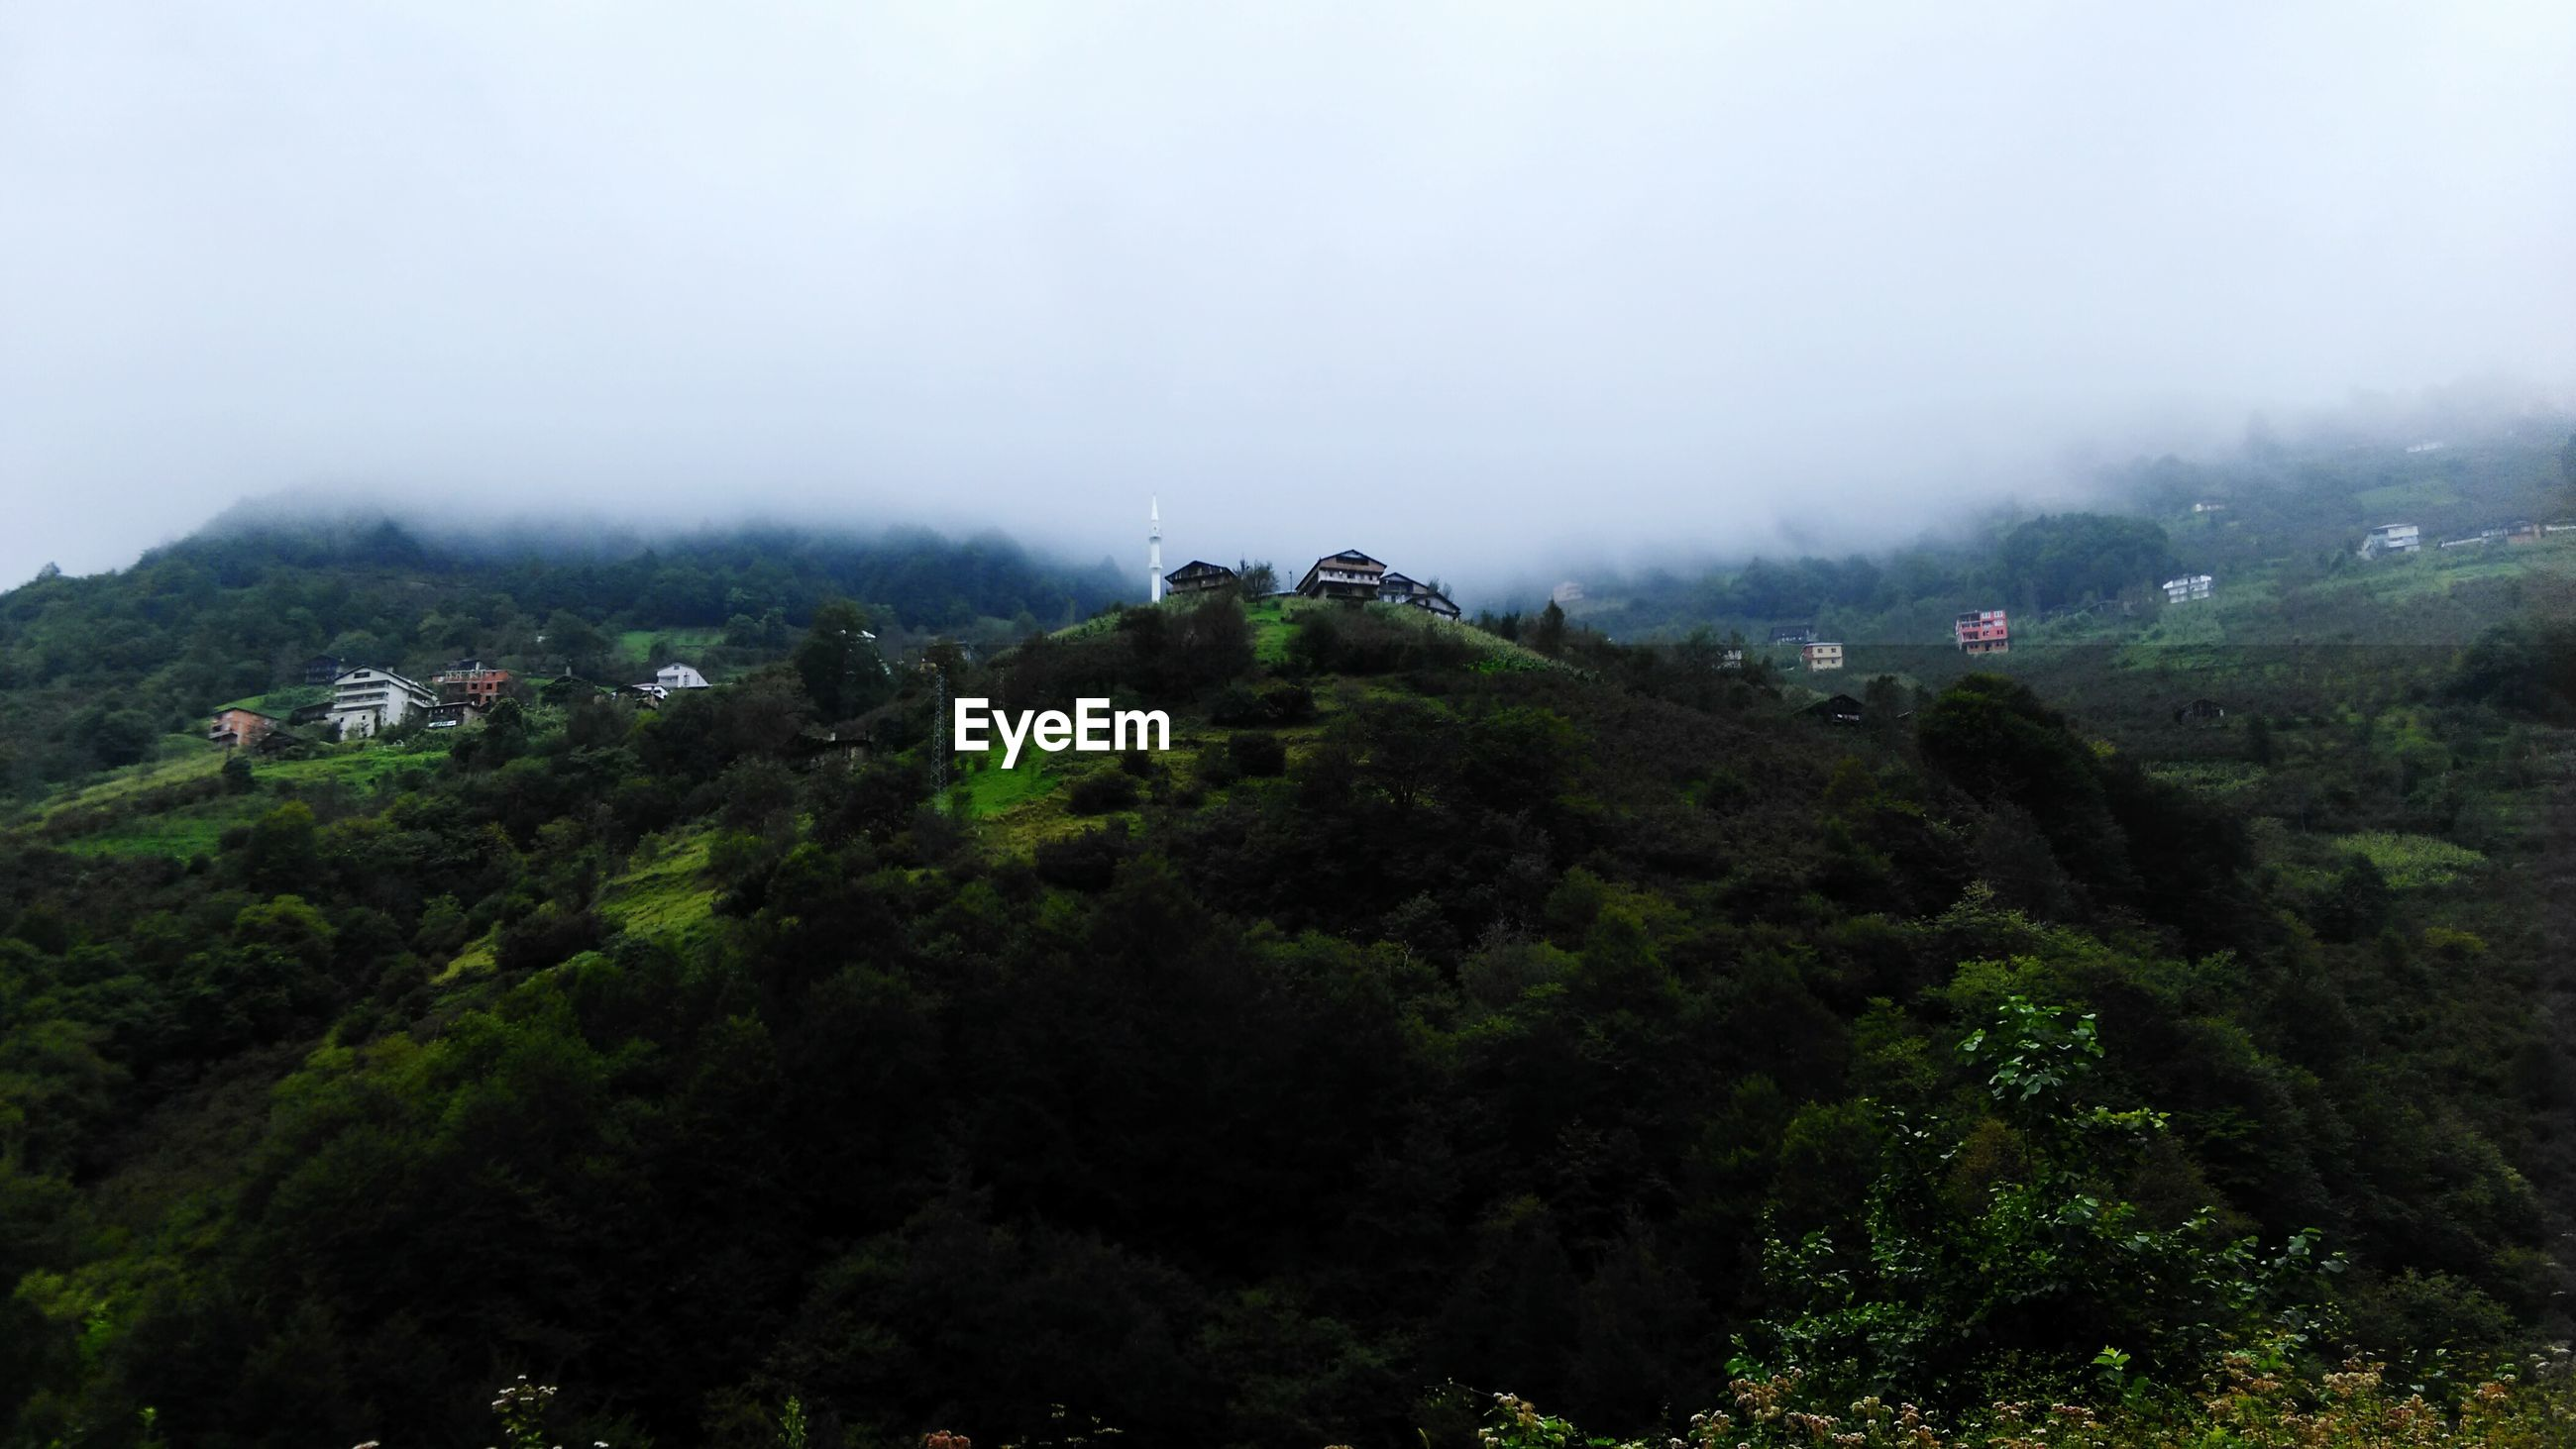 tree, fog, tranquil scene, tranquility, scenics, landscape, high angle view, mountain, beauty in nature, non-urban scene, weather, hill, nature, foggy, growth, travel destinations, green color, remote, tourism, lush foliage, valley, solitude, sky, outdoors, day, vacations, wide, ethereal, woodland